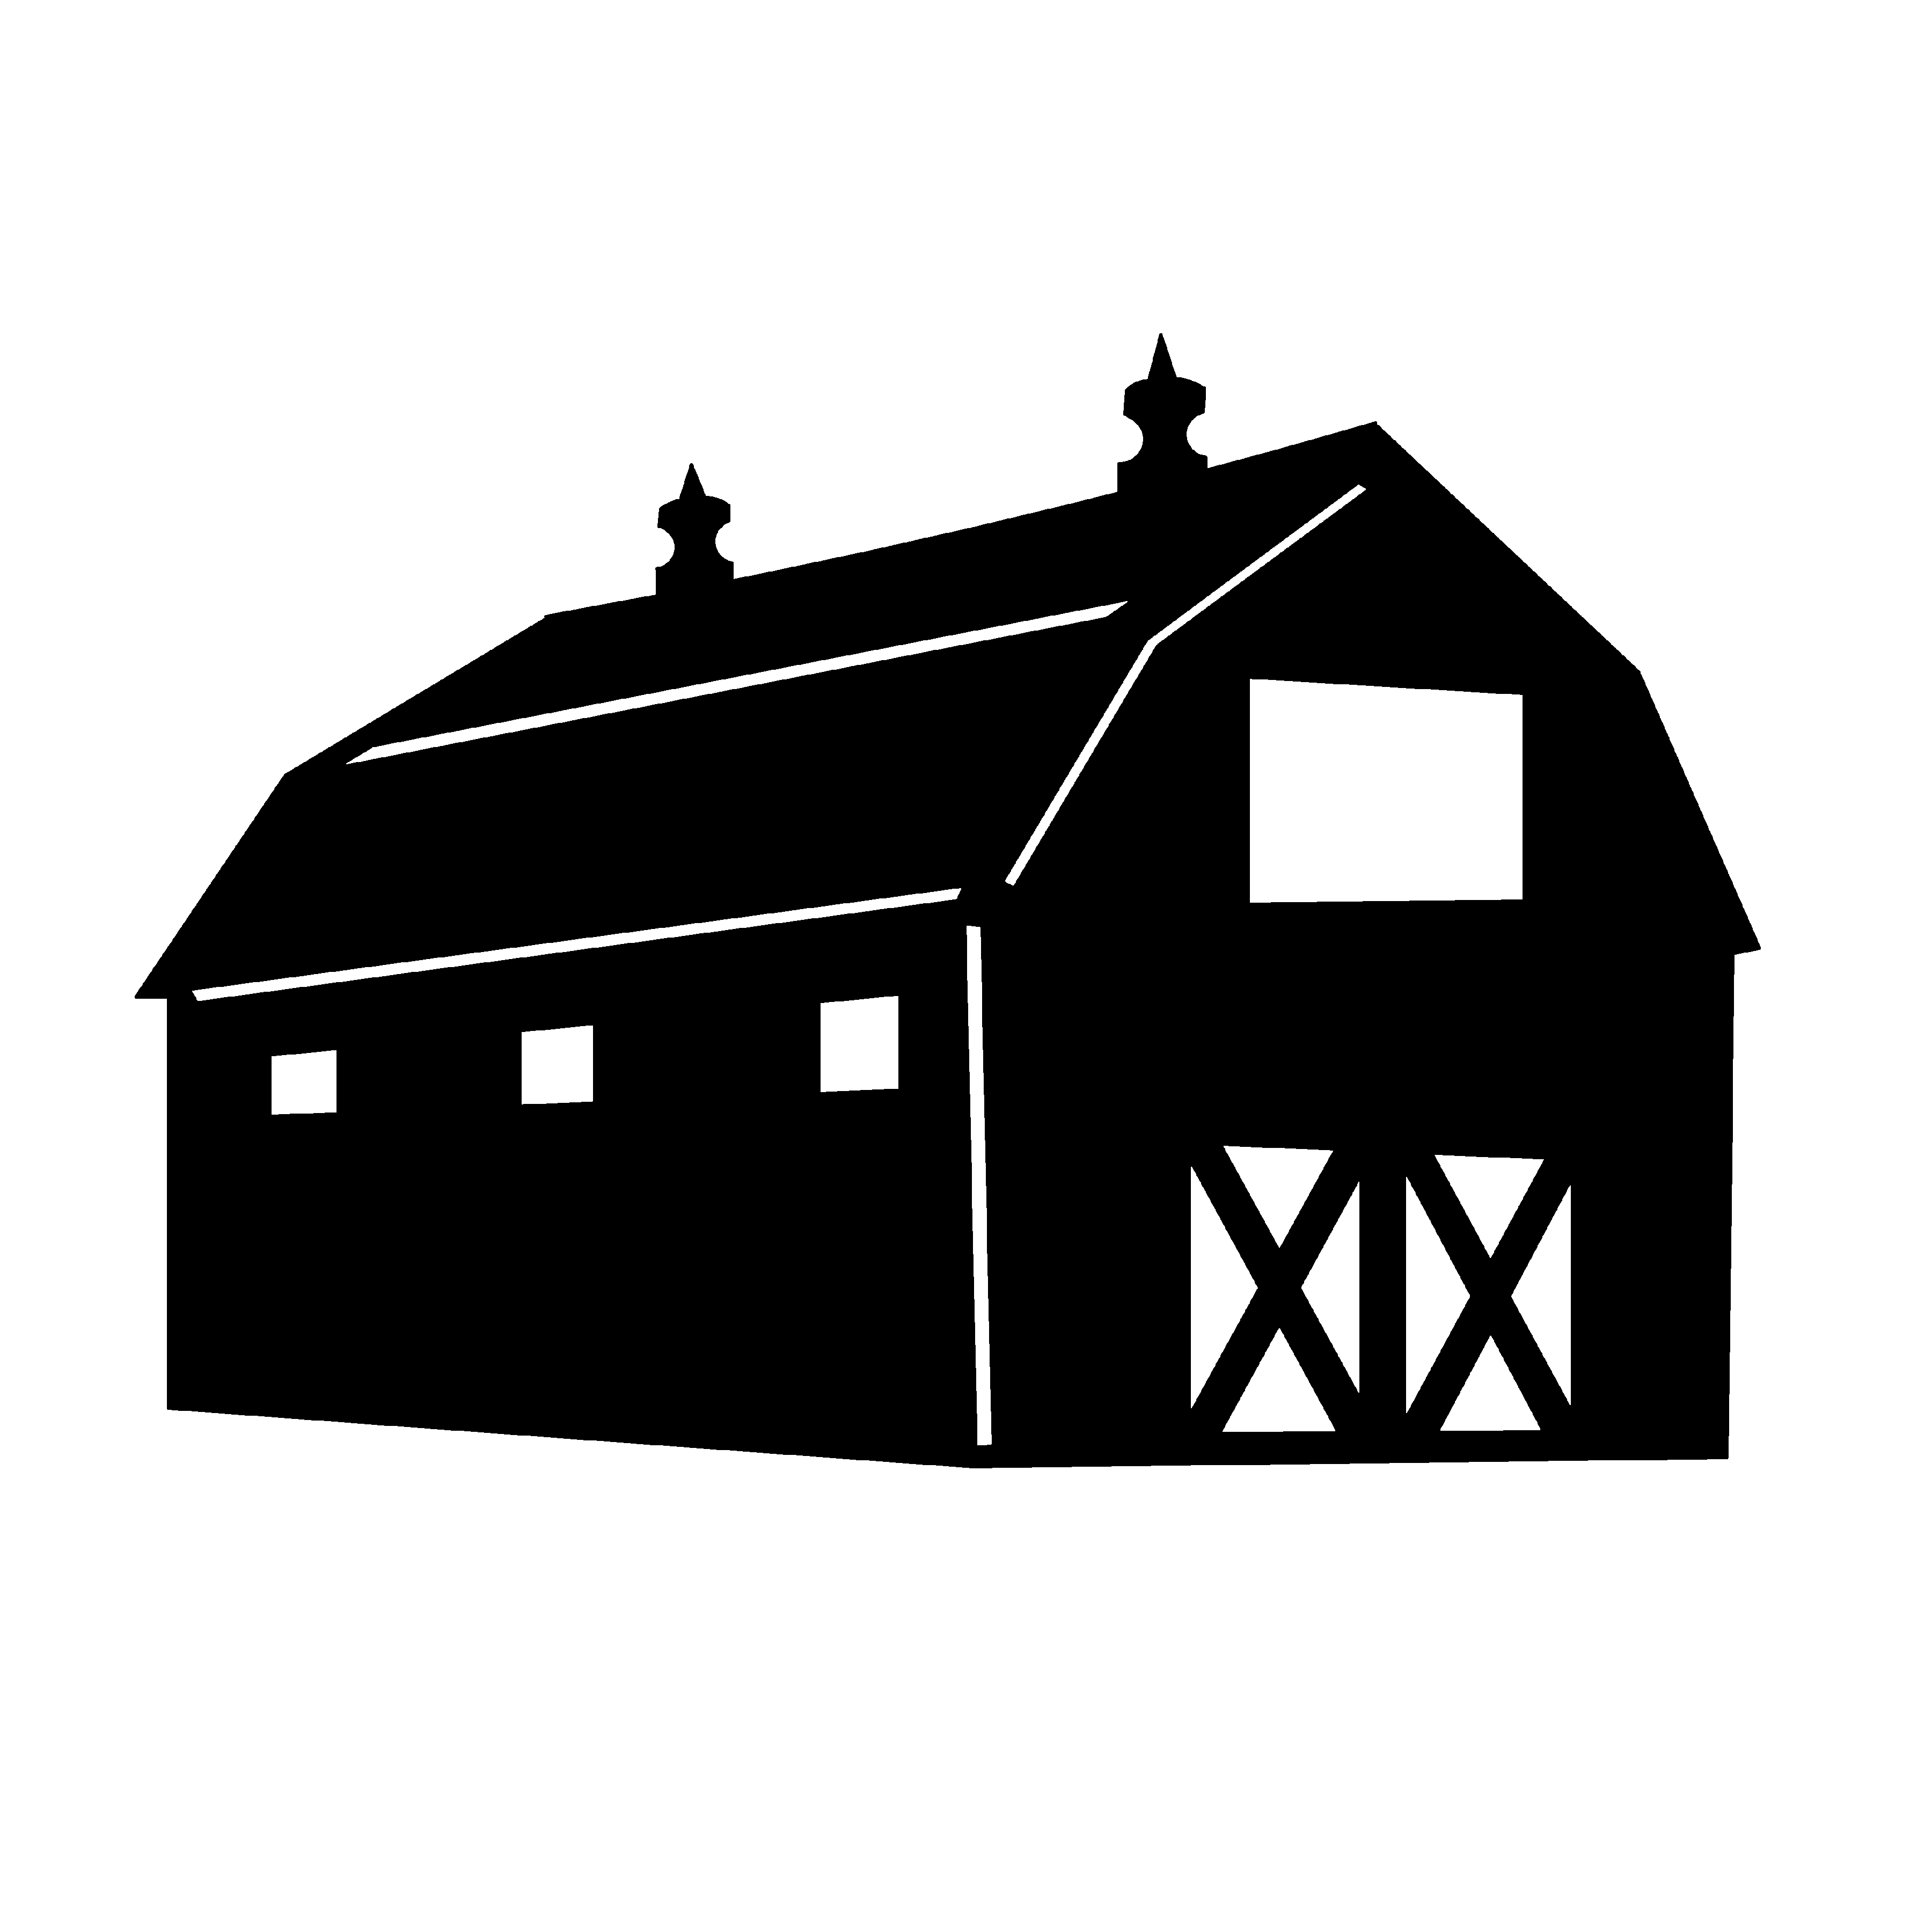 House roof at getdrawings. Barn clipart silhouette